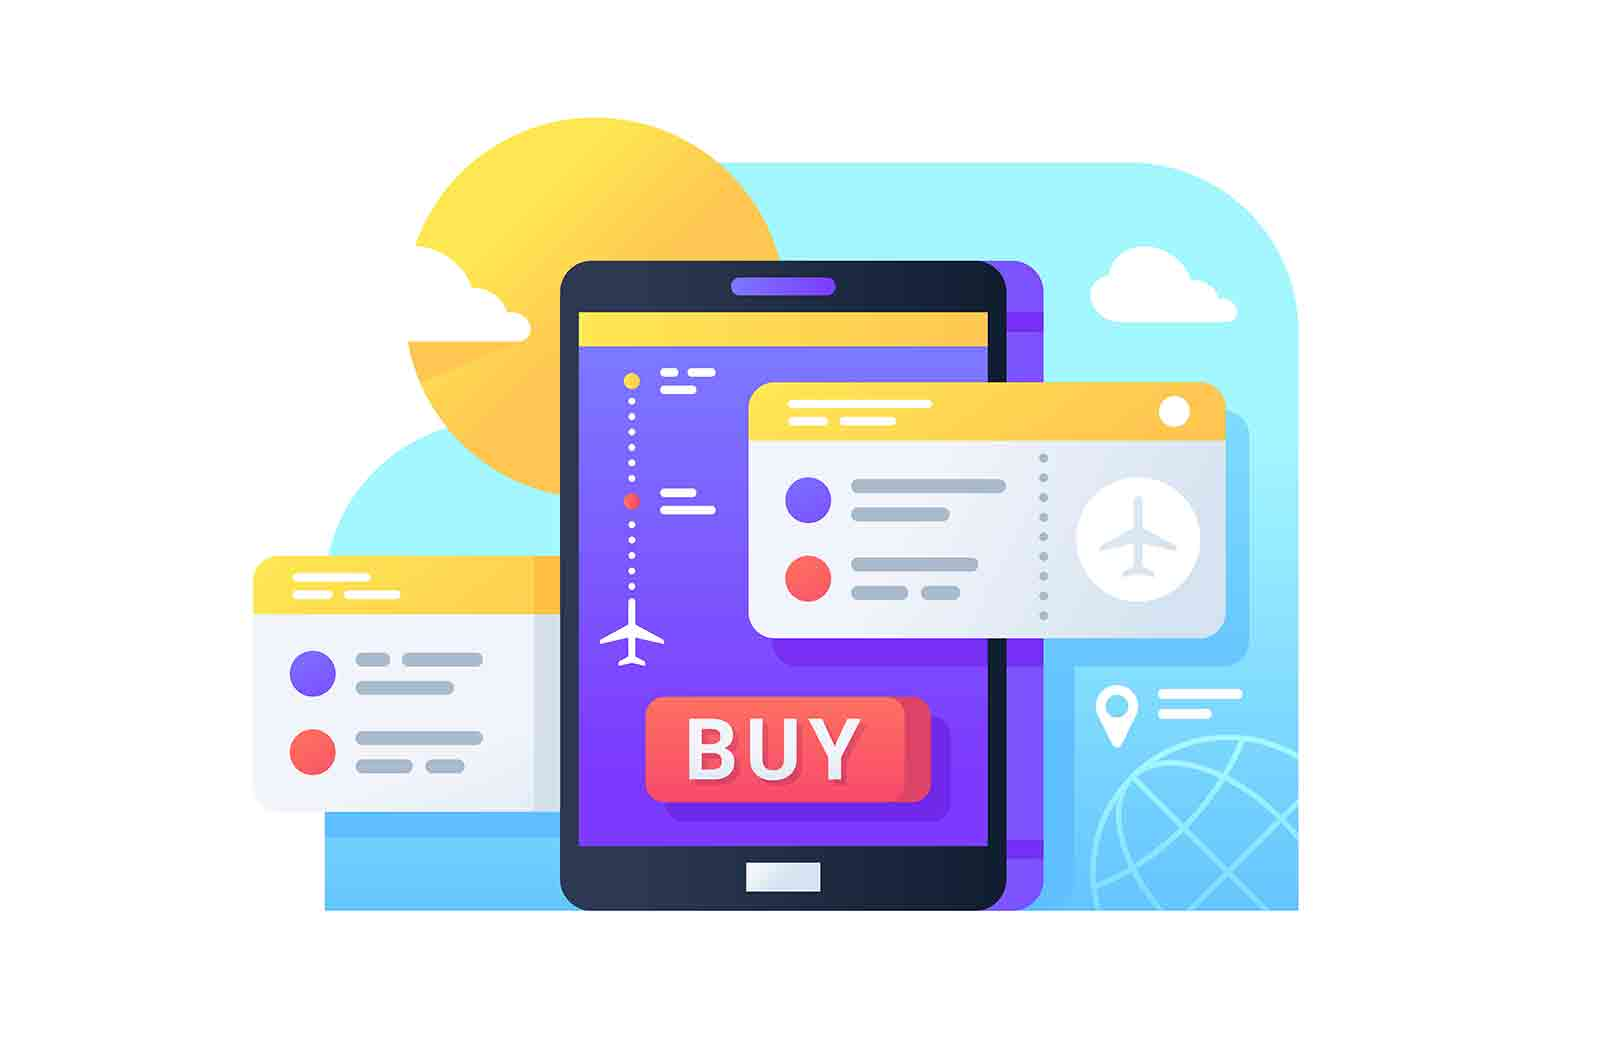 Buying air tickets online. Isolated icon concept of cellphone using app for booking aircraft trip. Vector illustration.